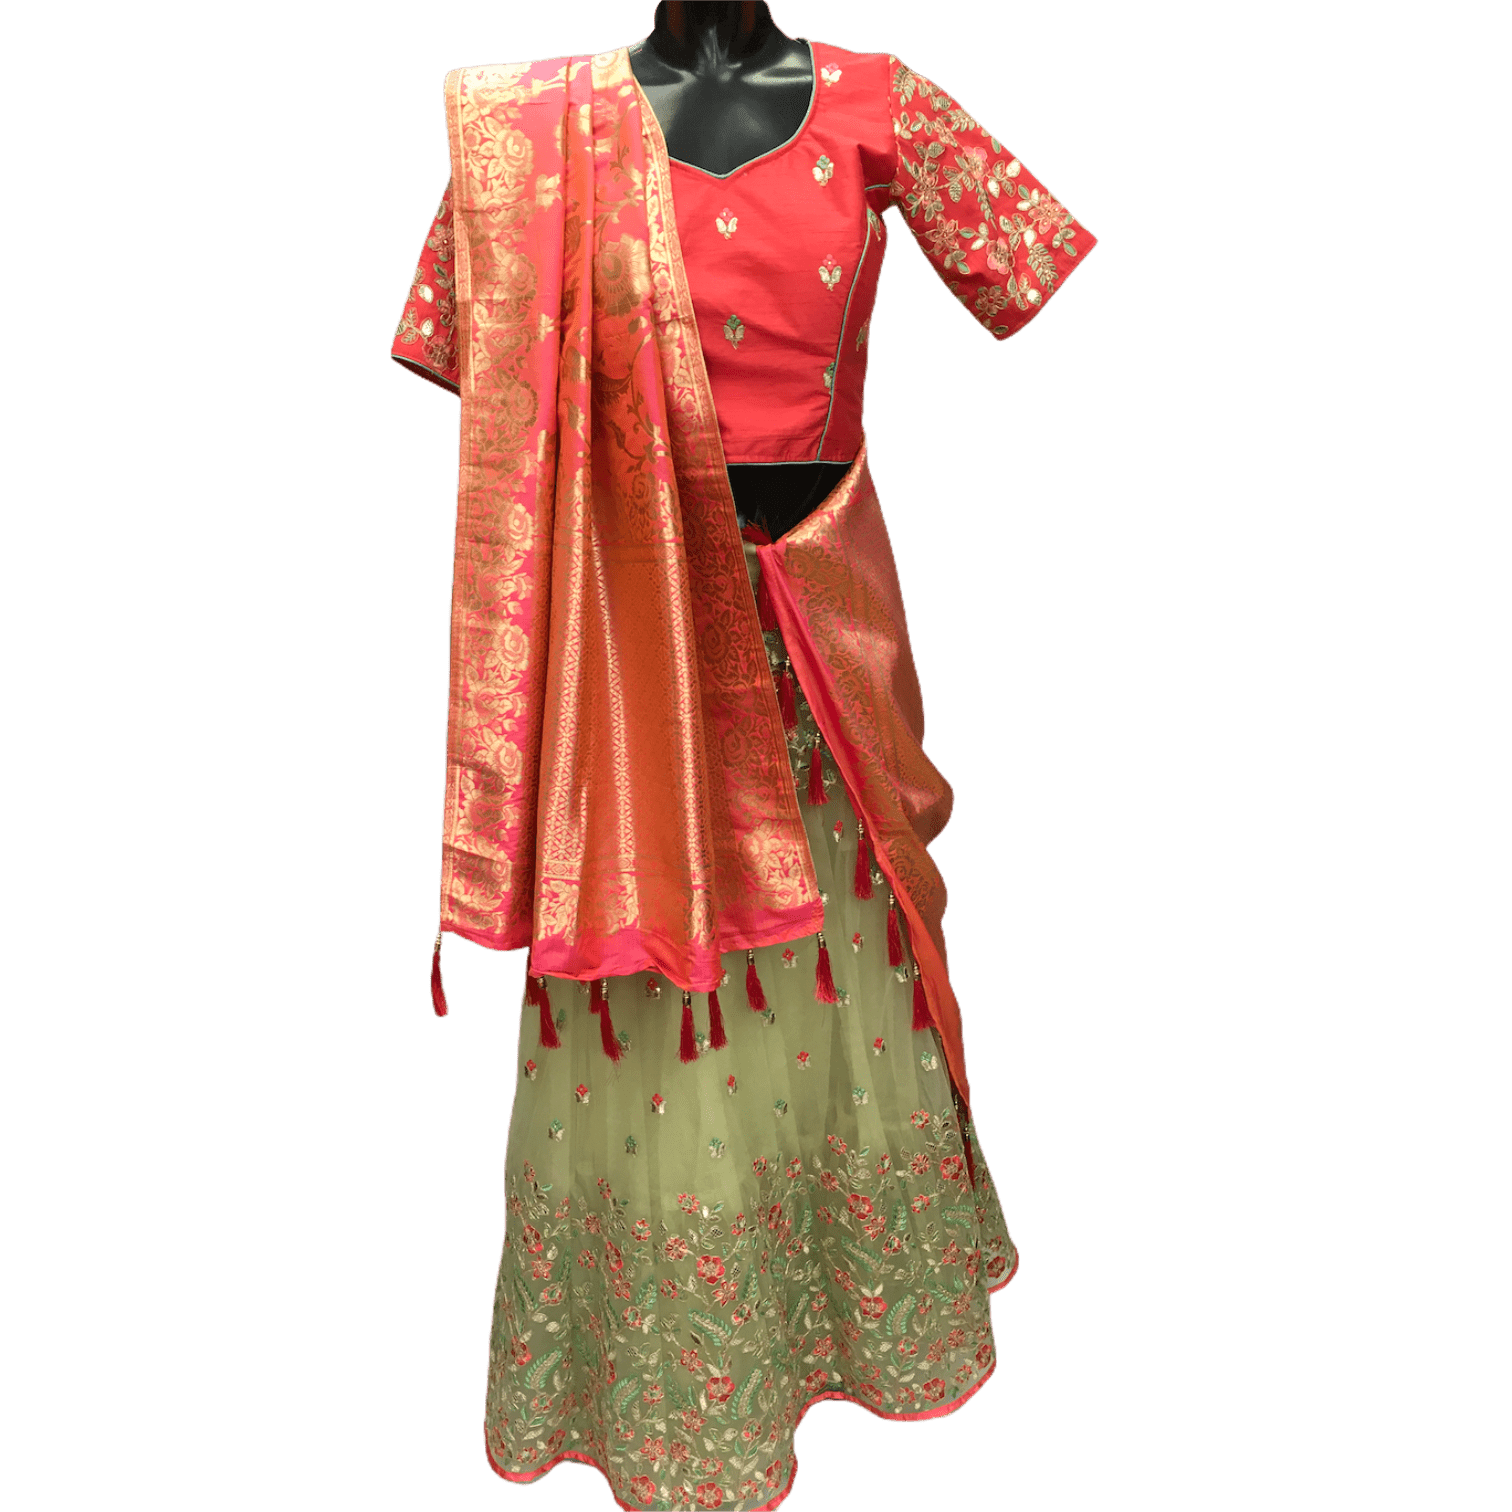 Fully stitched Ladies Lehnga suit  - Sea Green and Lemon - PLD5050 CY1119 - Prachy Creations